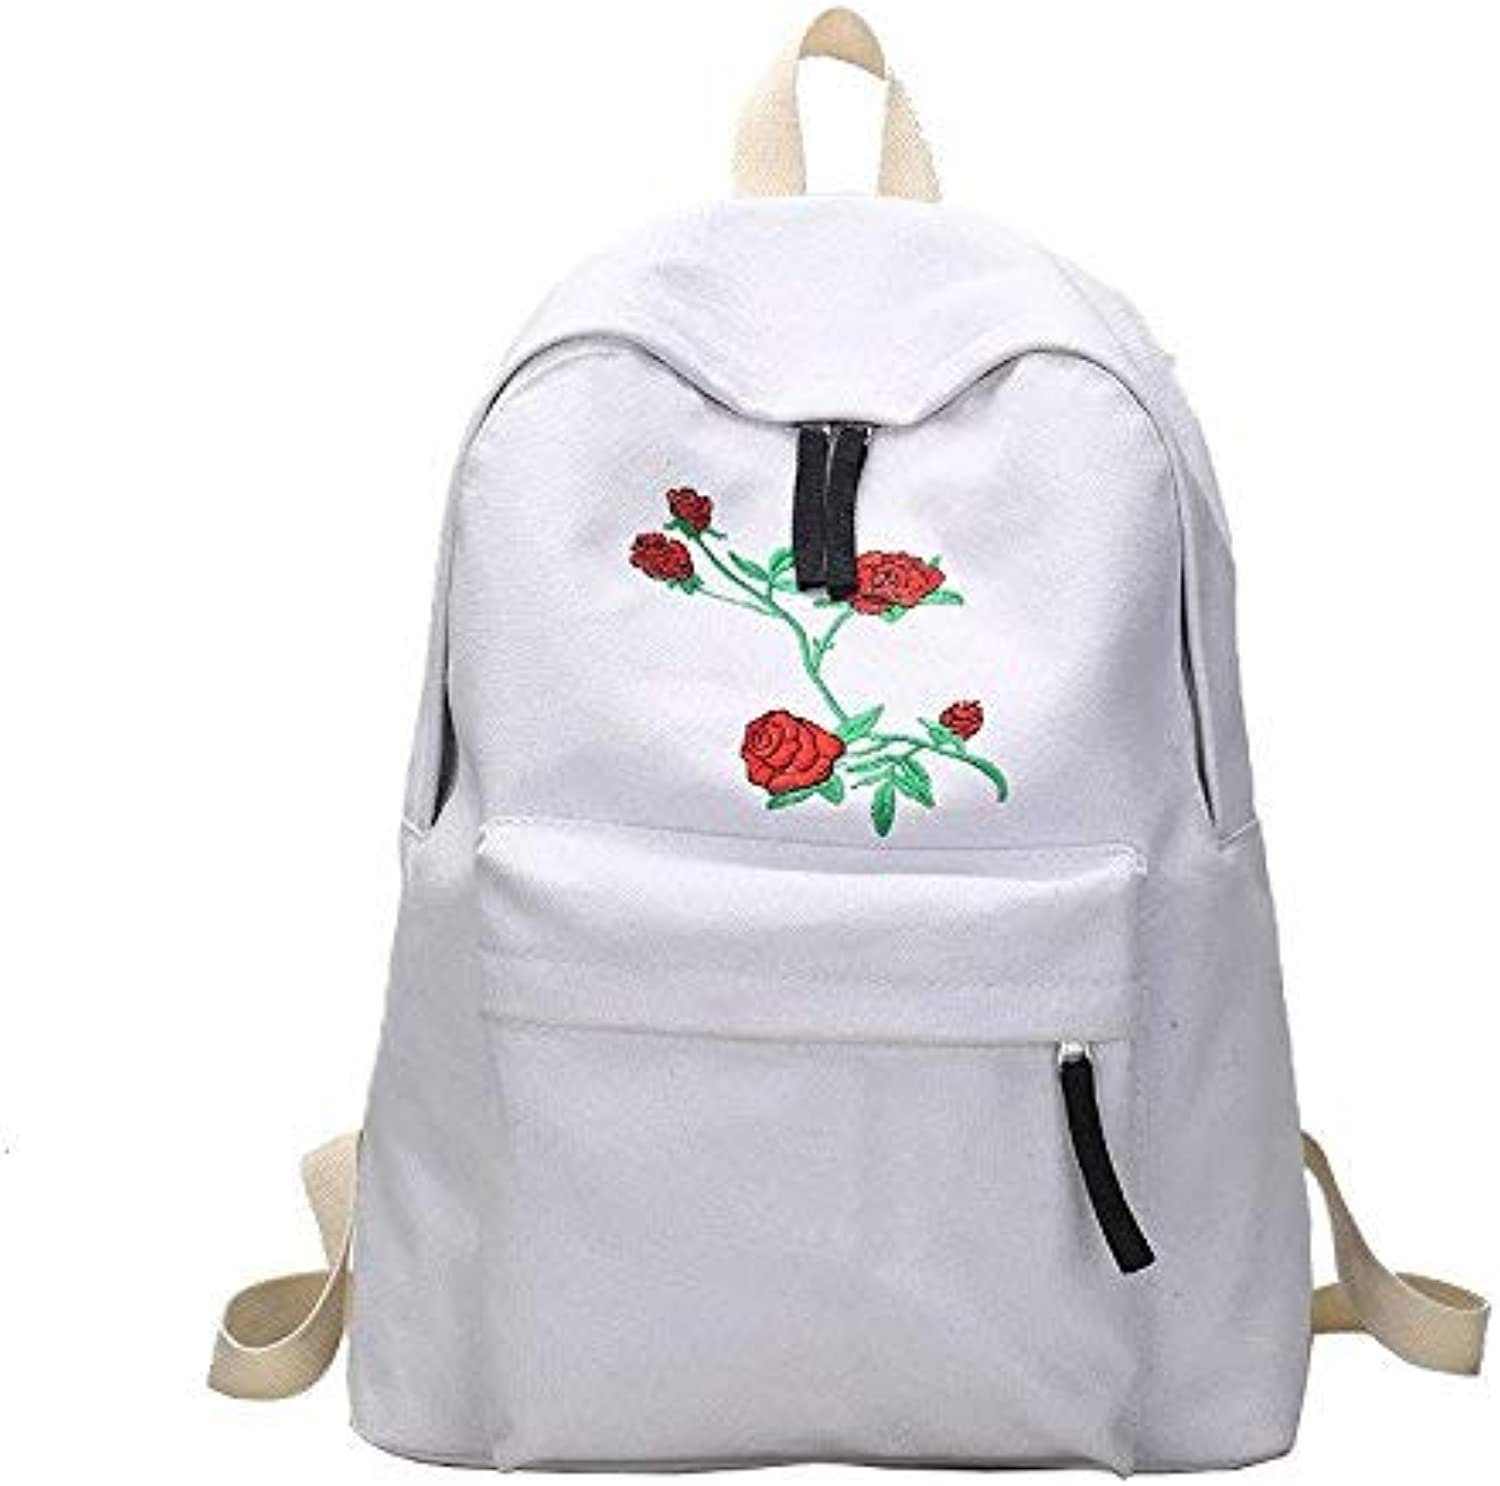 Lounayy Draper The Fashion Kids Backpack Package Students' School Backpack Dual from Mass School Bags Shoulder Bag Double Click (color   White, Size   One Size)